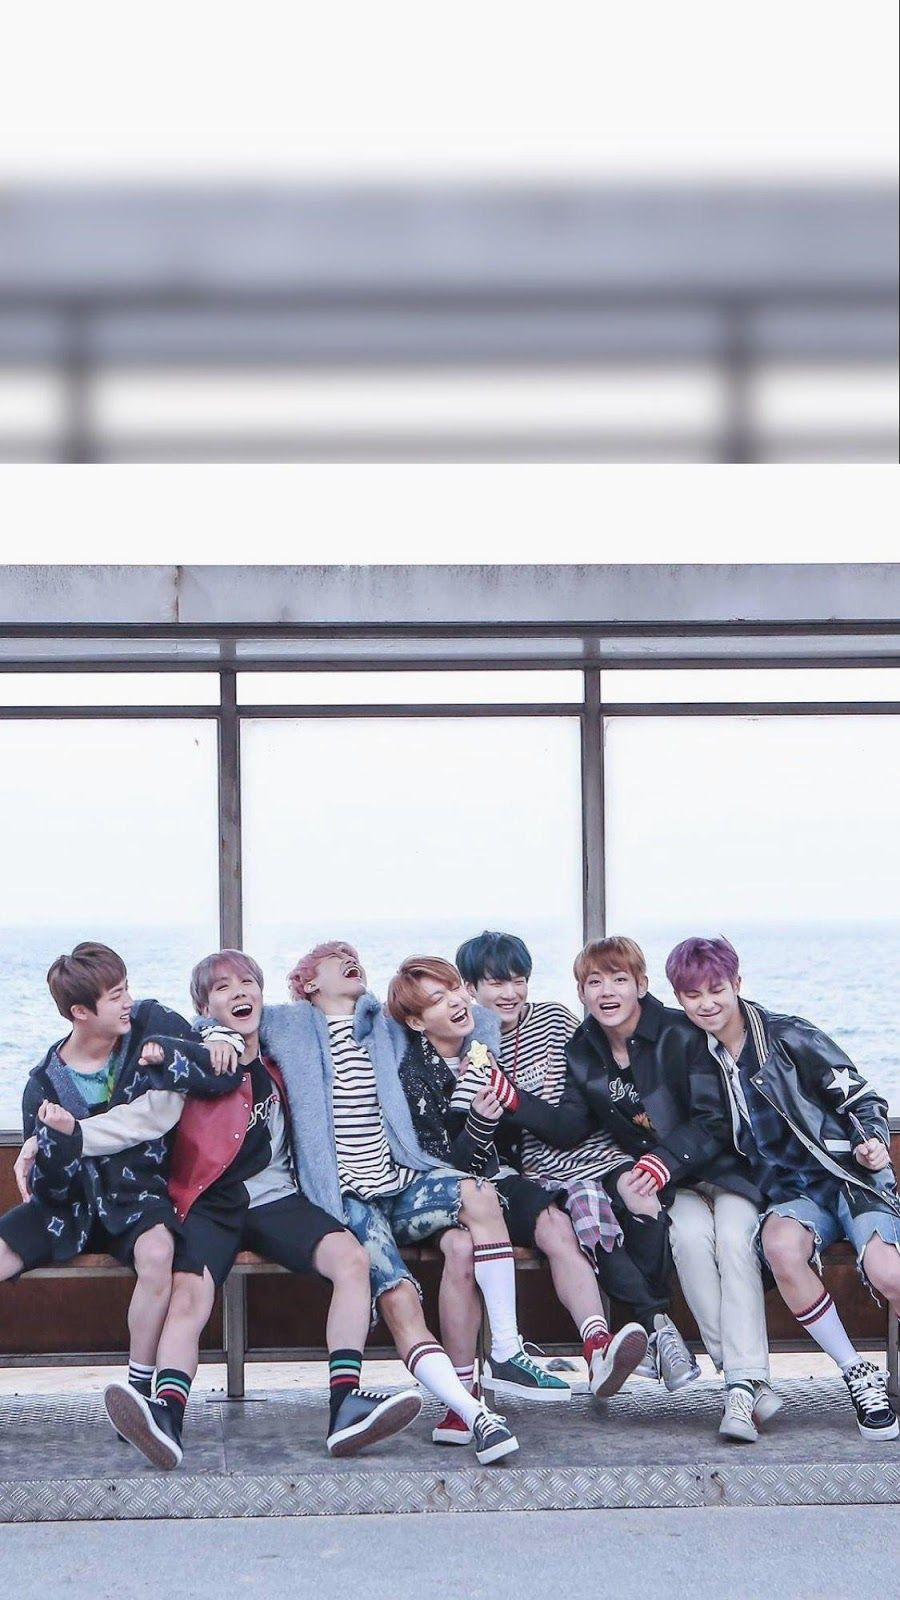 Bts Members Latest Wallpaper Collection Thewaofam Wallpaper In 2020 Bts Wallpaper Bts Backgrounds Bts Walpaper